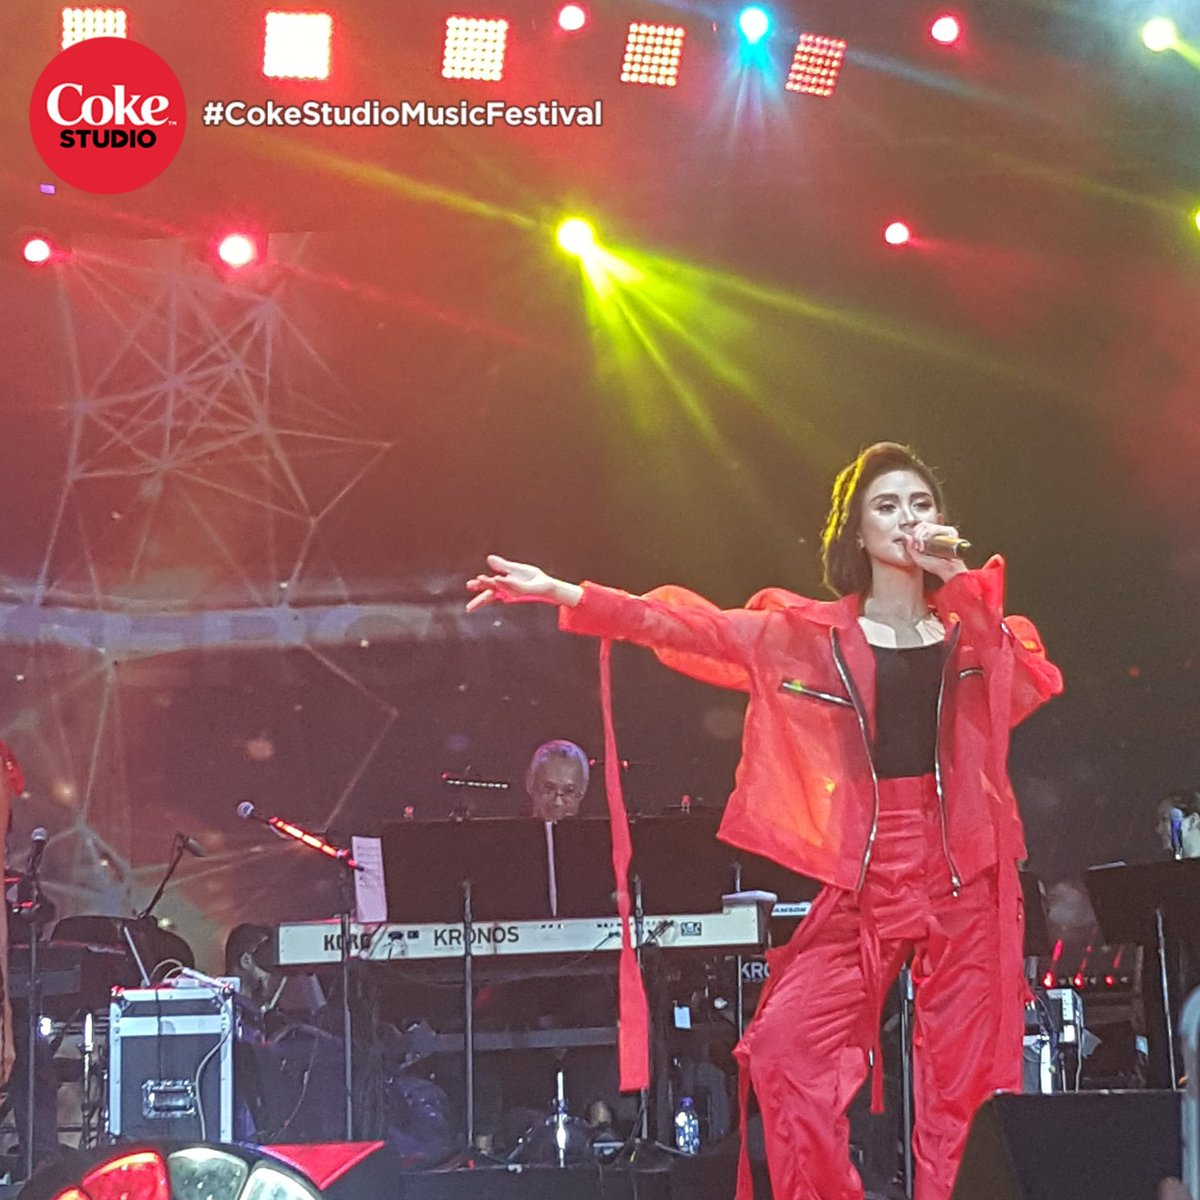 Everything feels right knowing that the Pop Superstar is here! Welcome @justsarahg to the #CokeStudioMusicFestival stage!<br>http://pic.twitter.com/cVFYj4eIuL